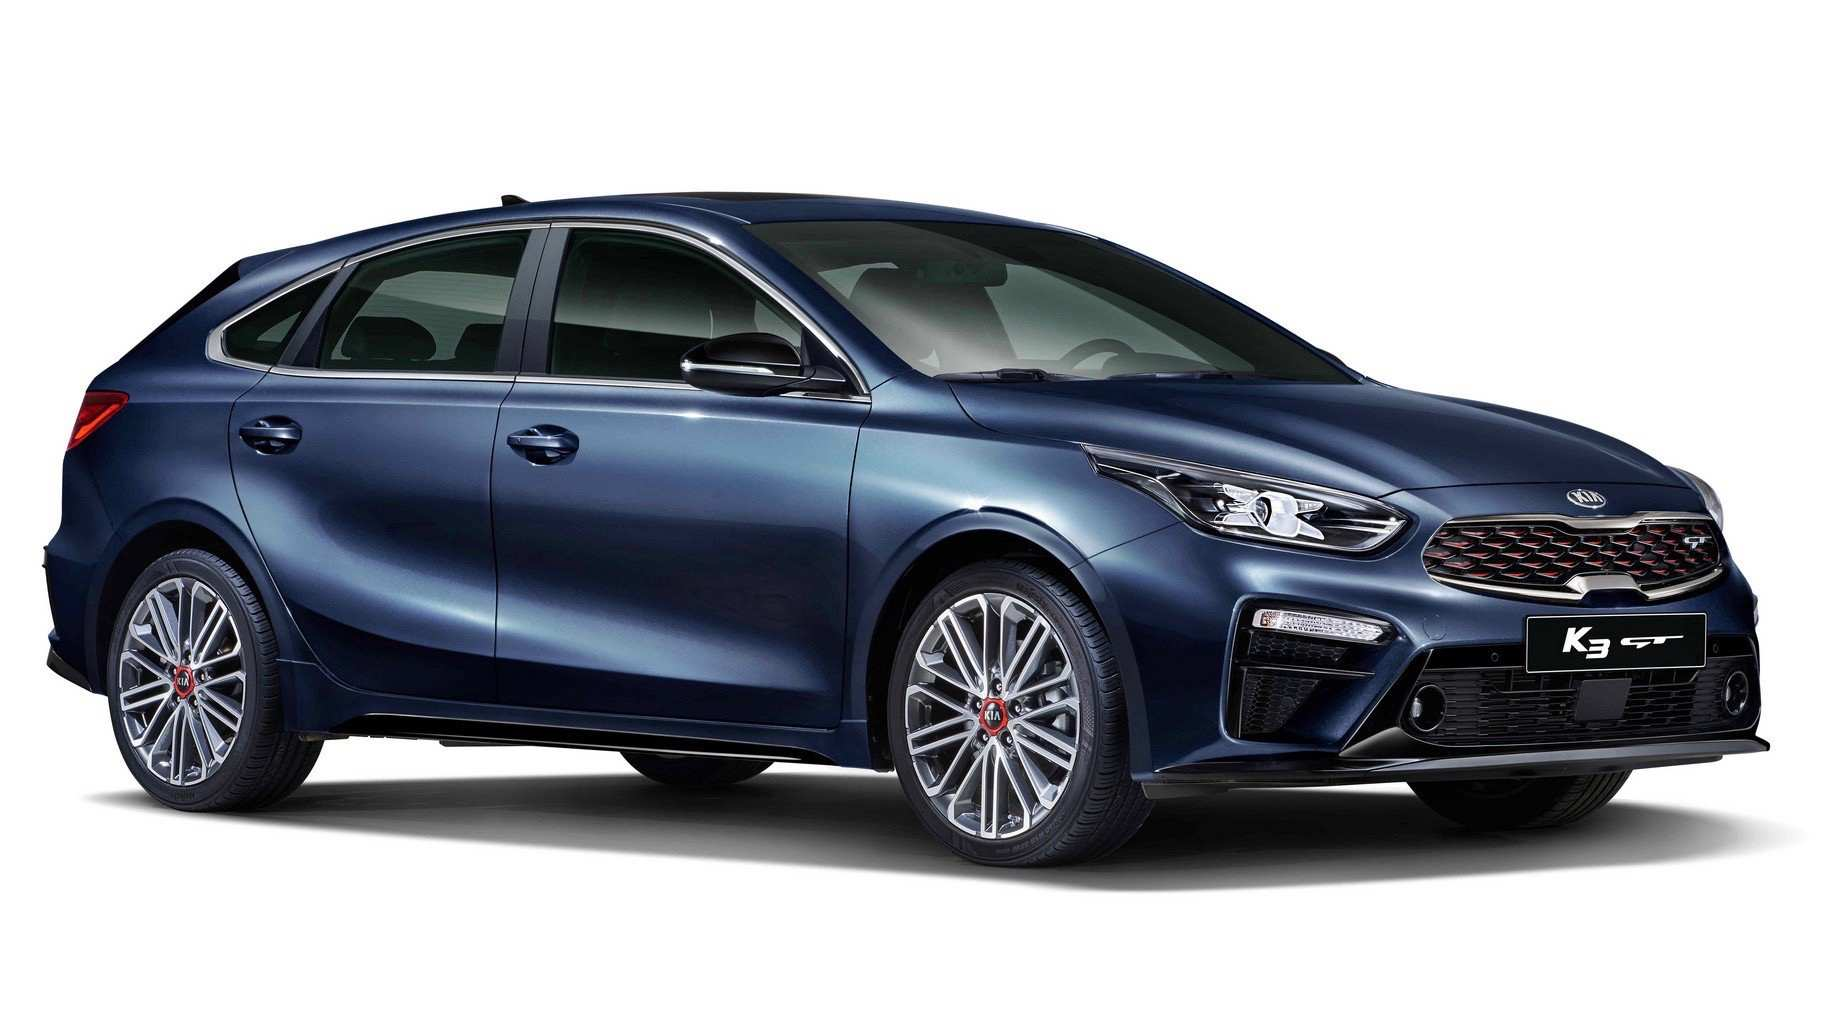 48 All New Kia Cerato Hatch 2019 Performance for Kia Cerato Hatch 2019